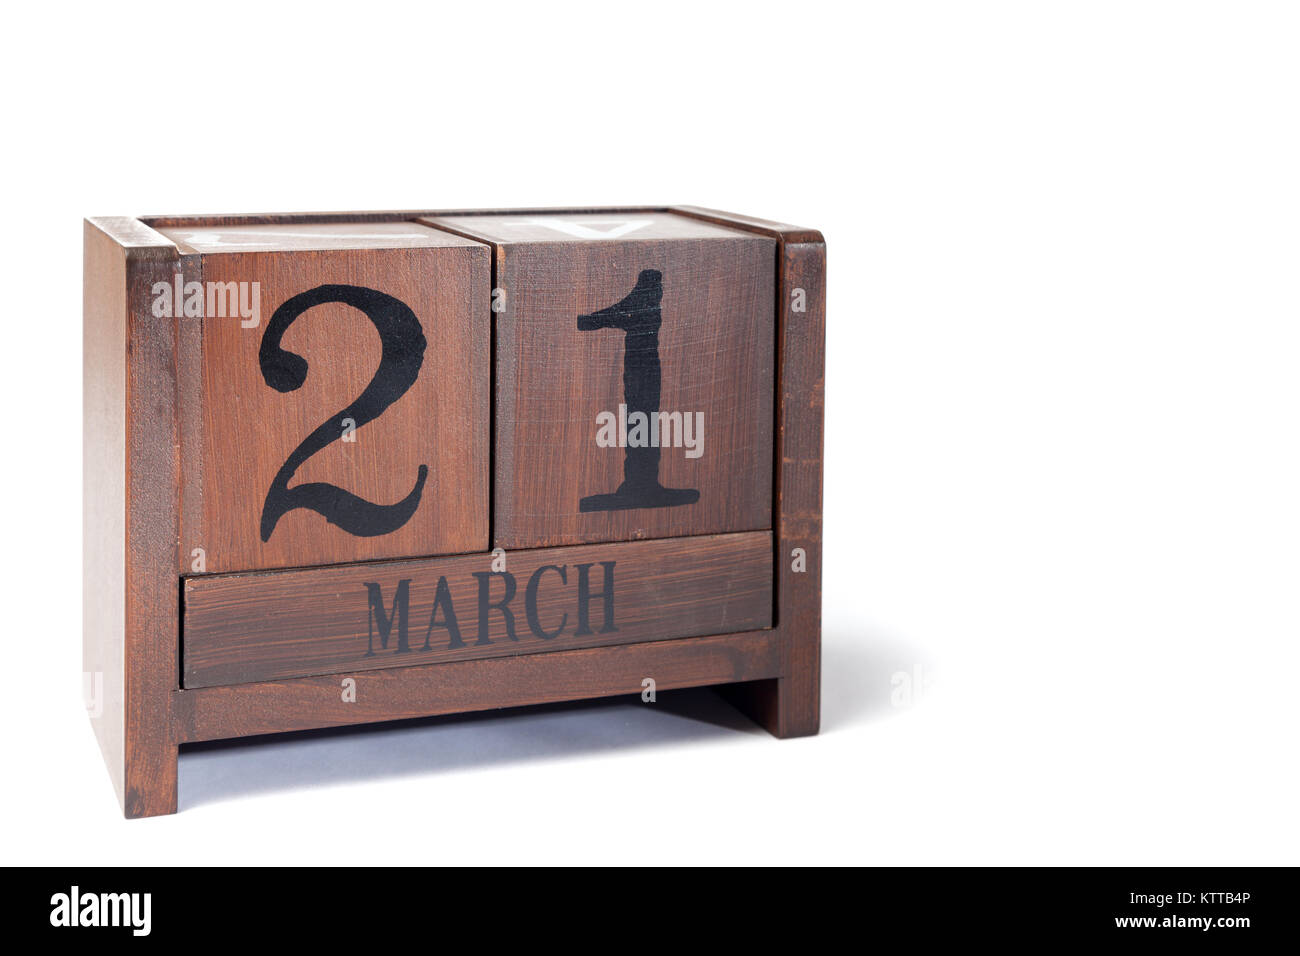 Wooden Perpetual Calendar set to March 21st - Stock Image